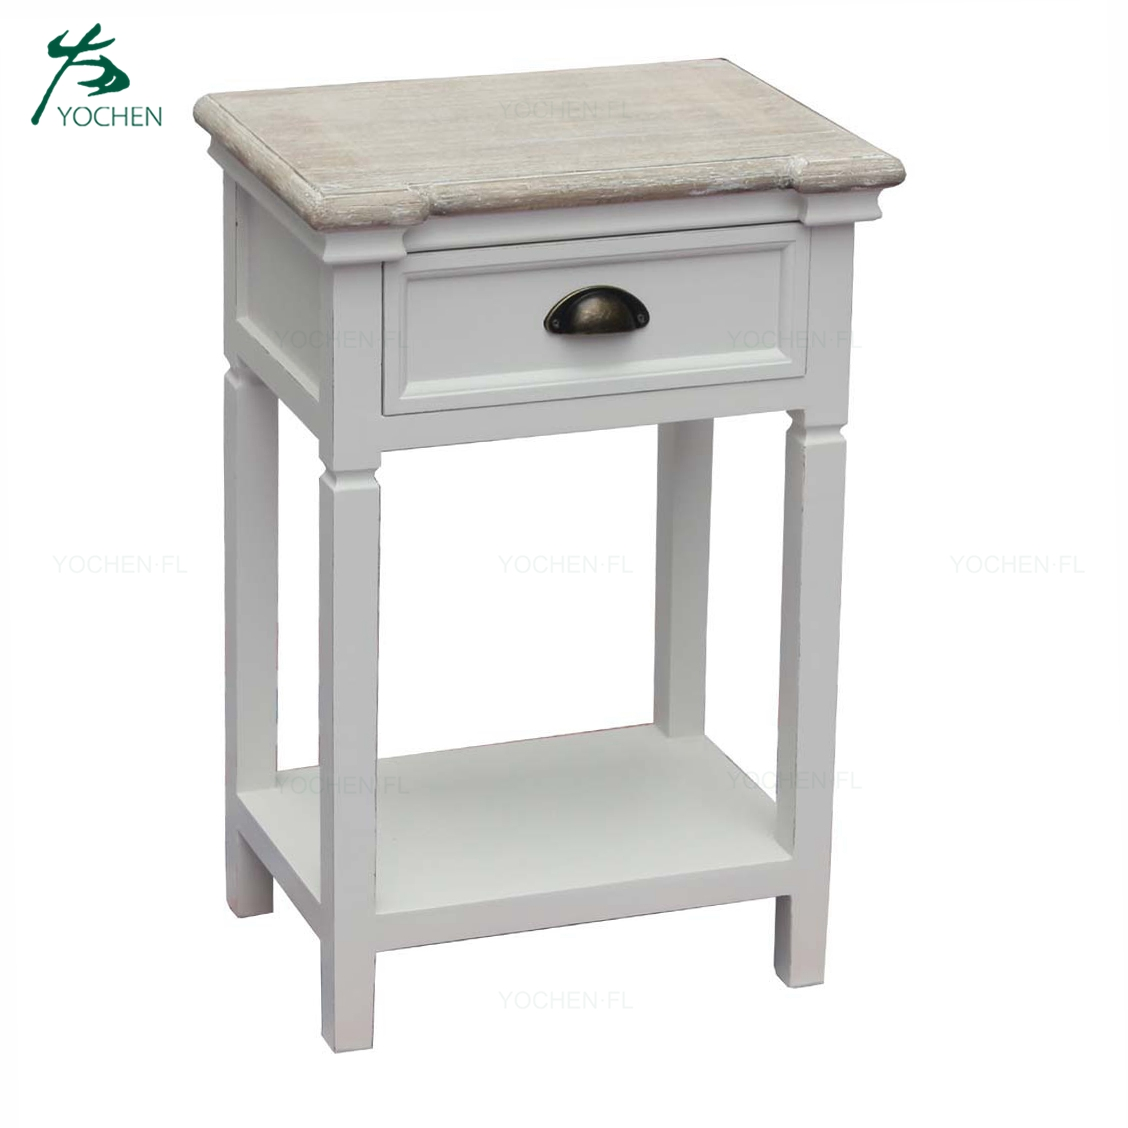 Bedroom Wooden Nightstand Bedside End Table